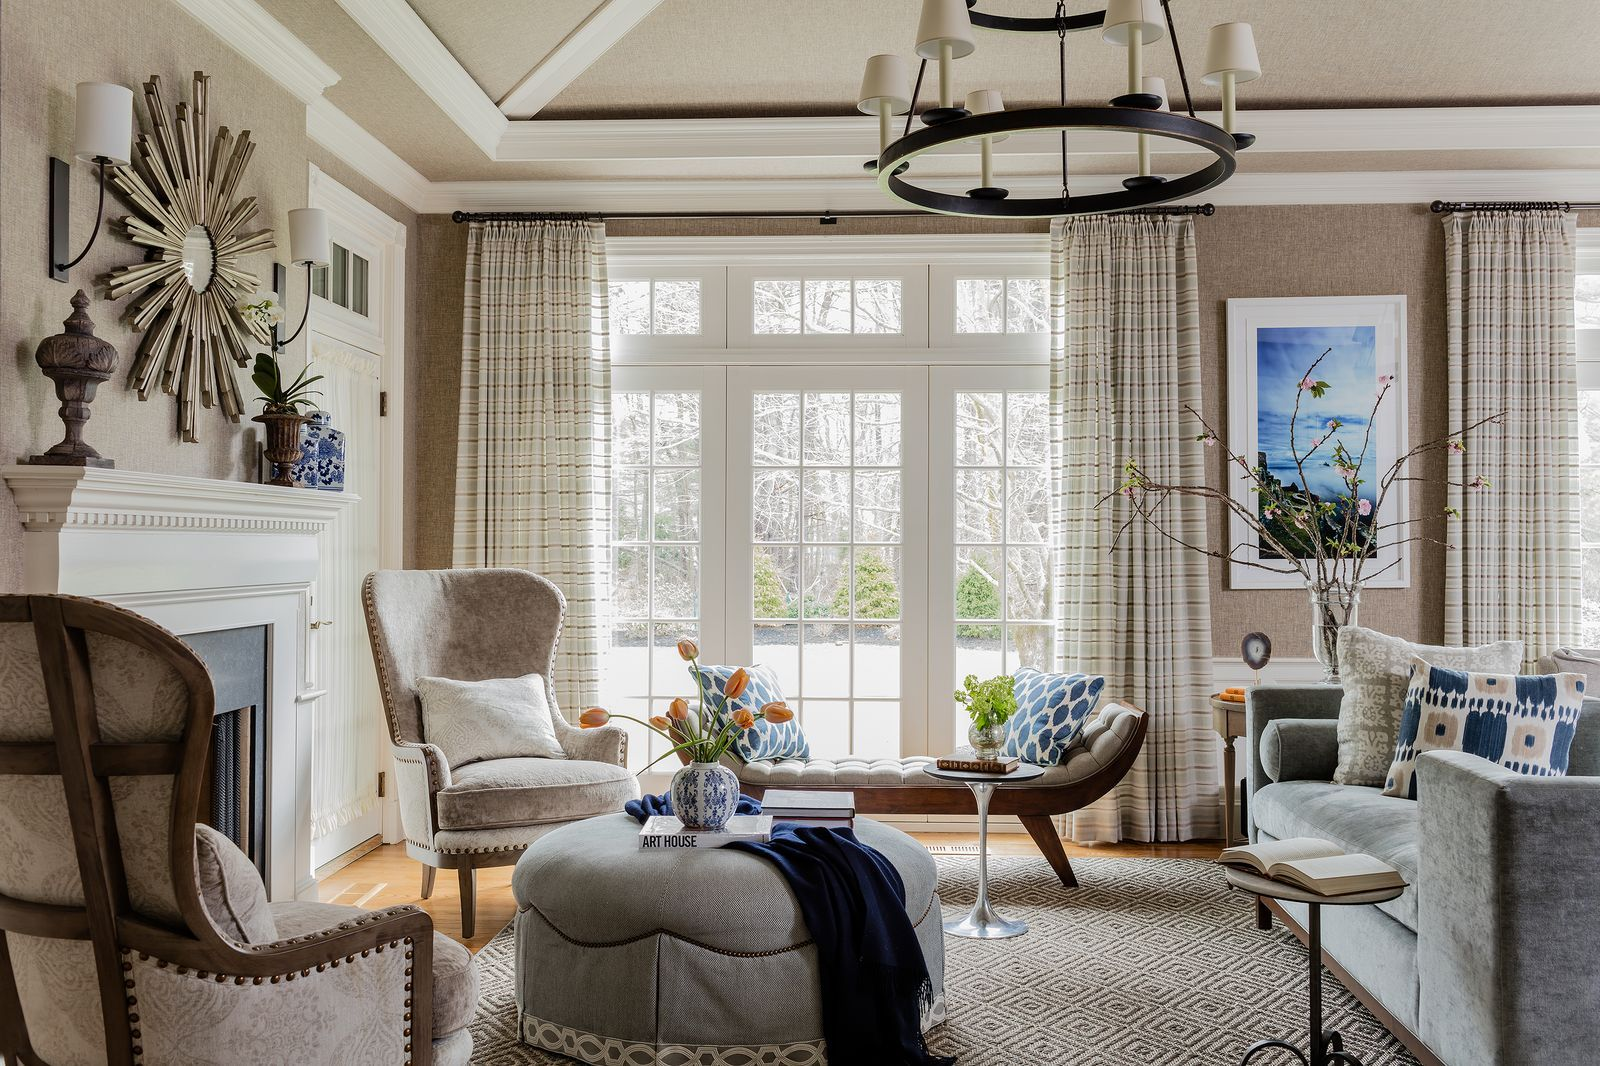 our favorite living room seating arrangement ideas on family picture wall ideas for living room furniture arrangements id=43533